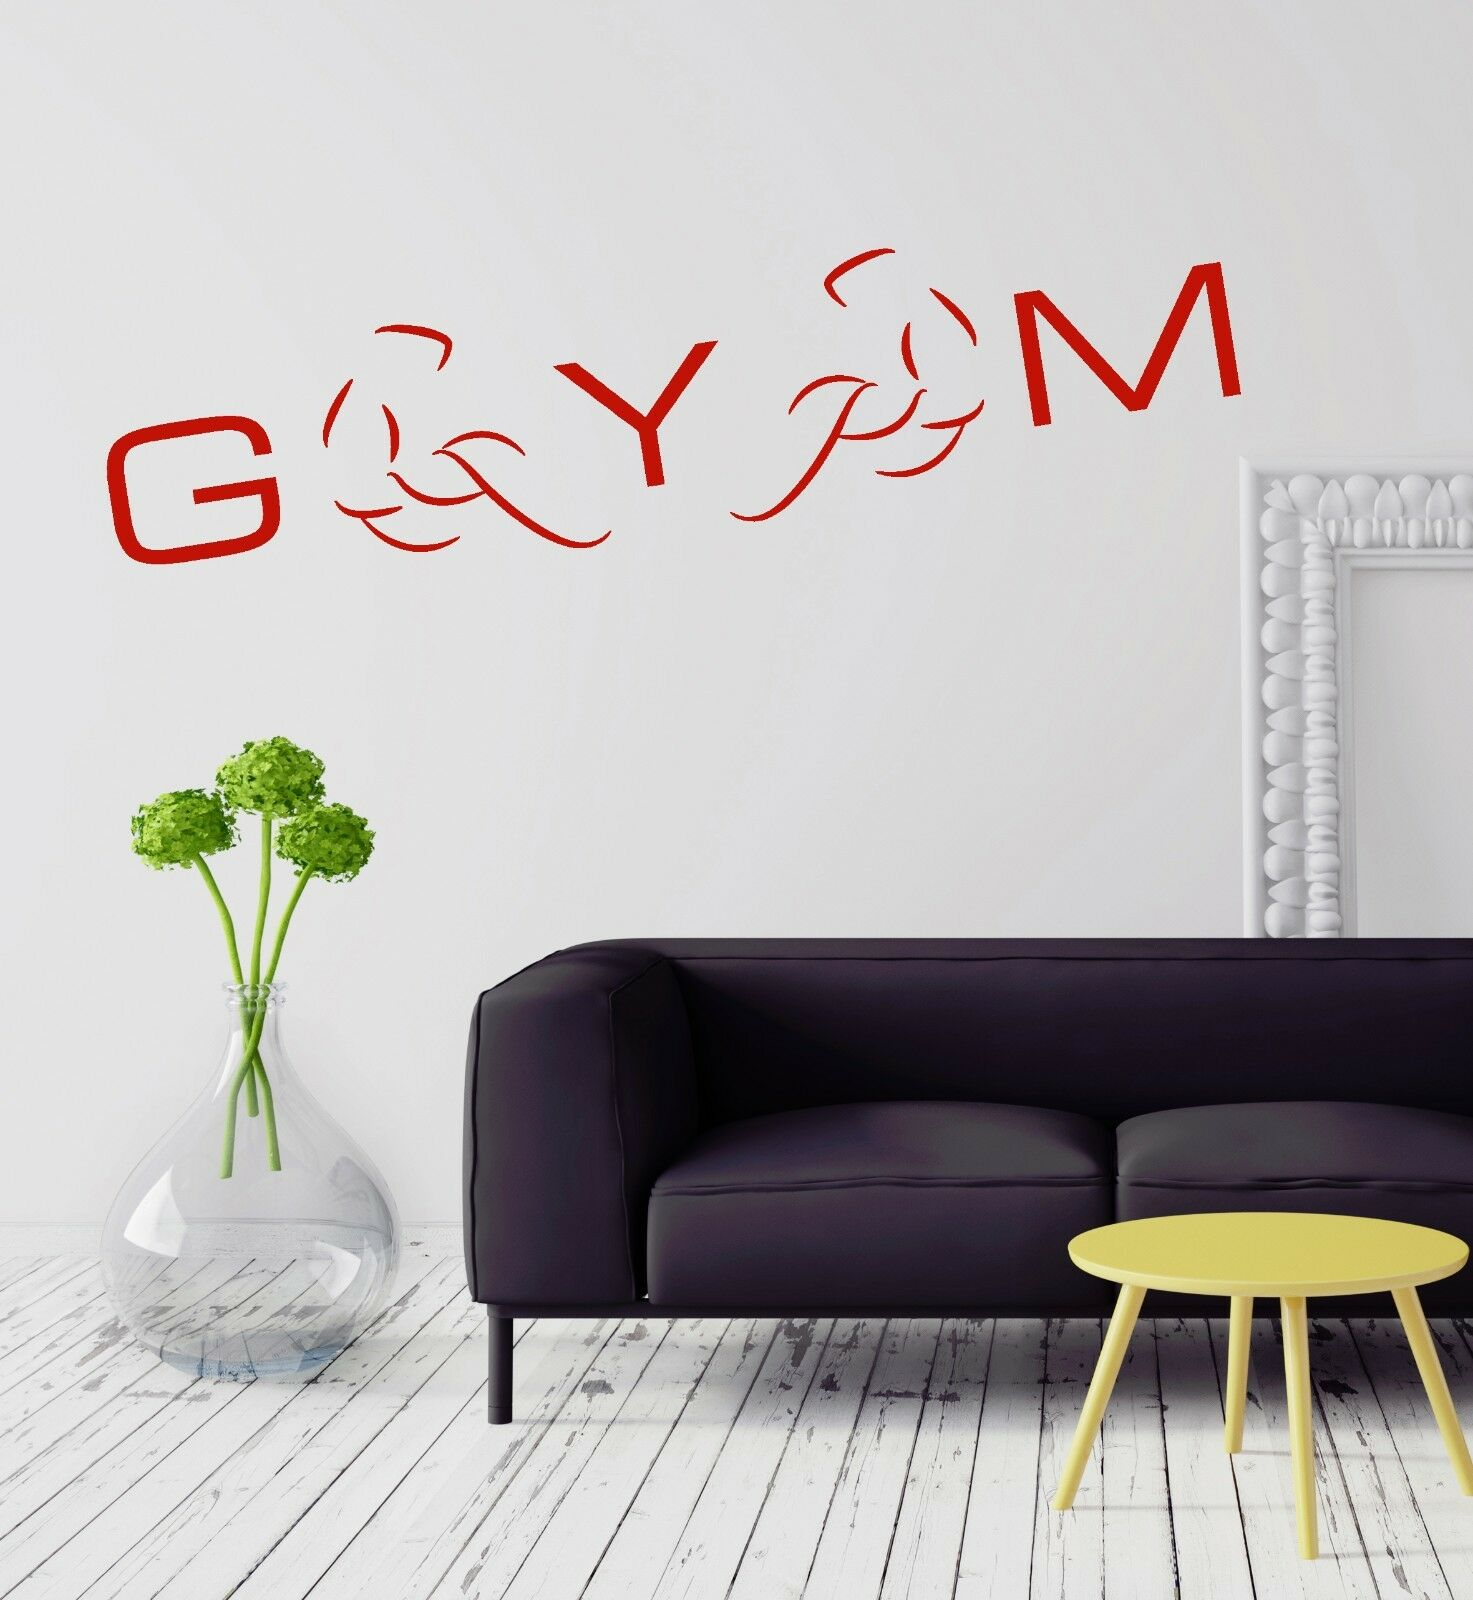 Wall Vinyl Sticker Decal Gym Fitness Muscled Bodybuilding Sports Decor (ig2084)